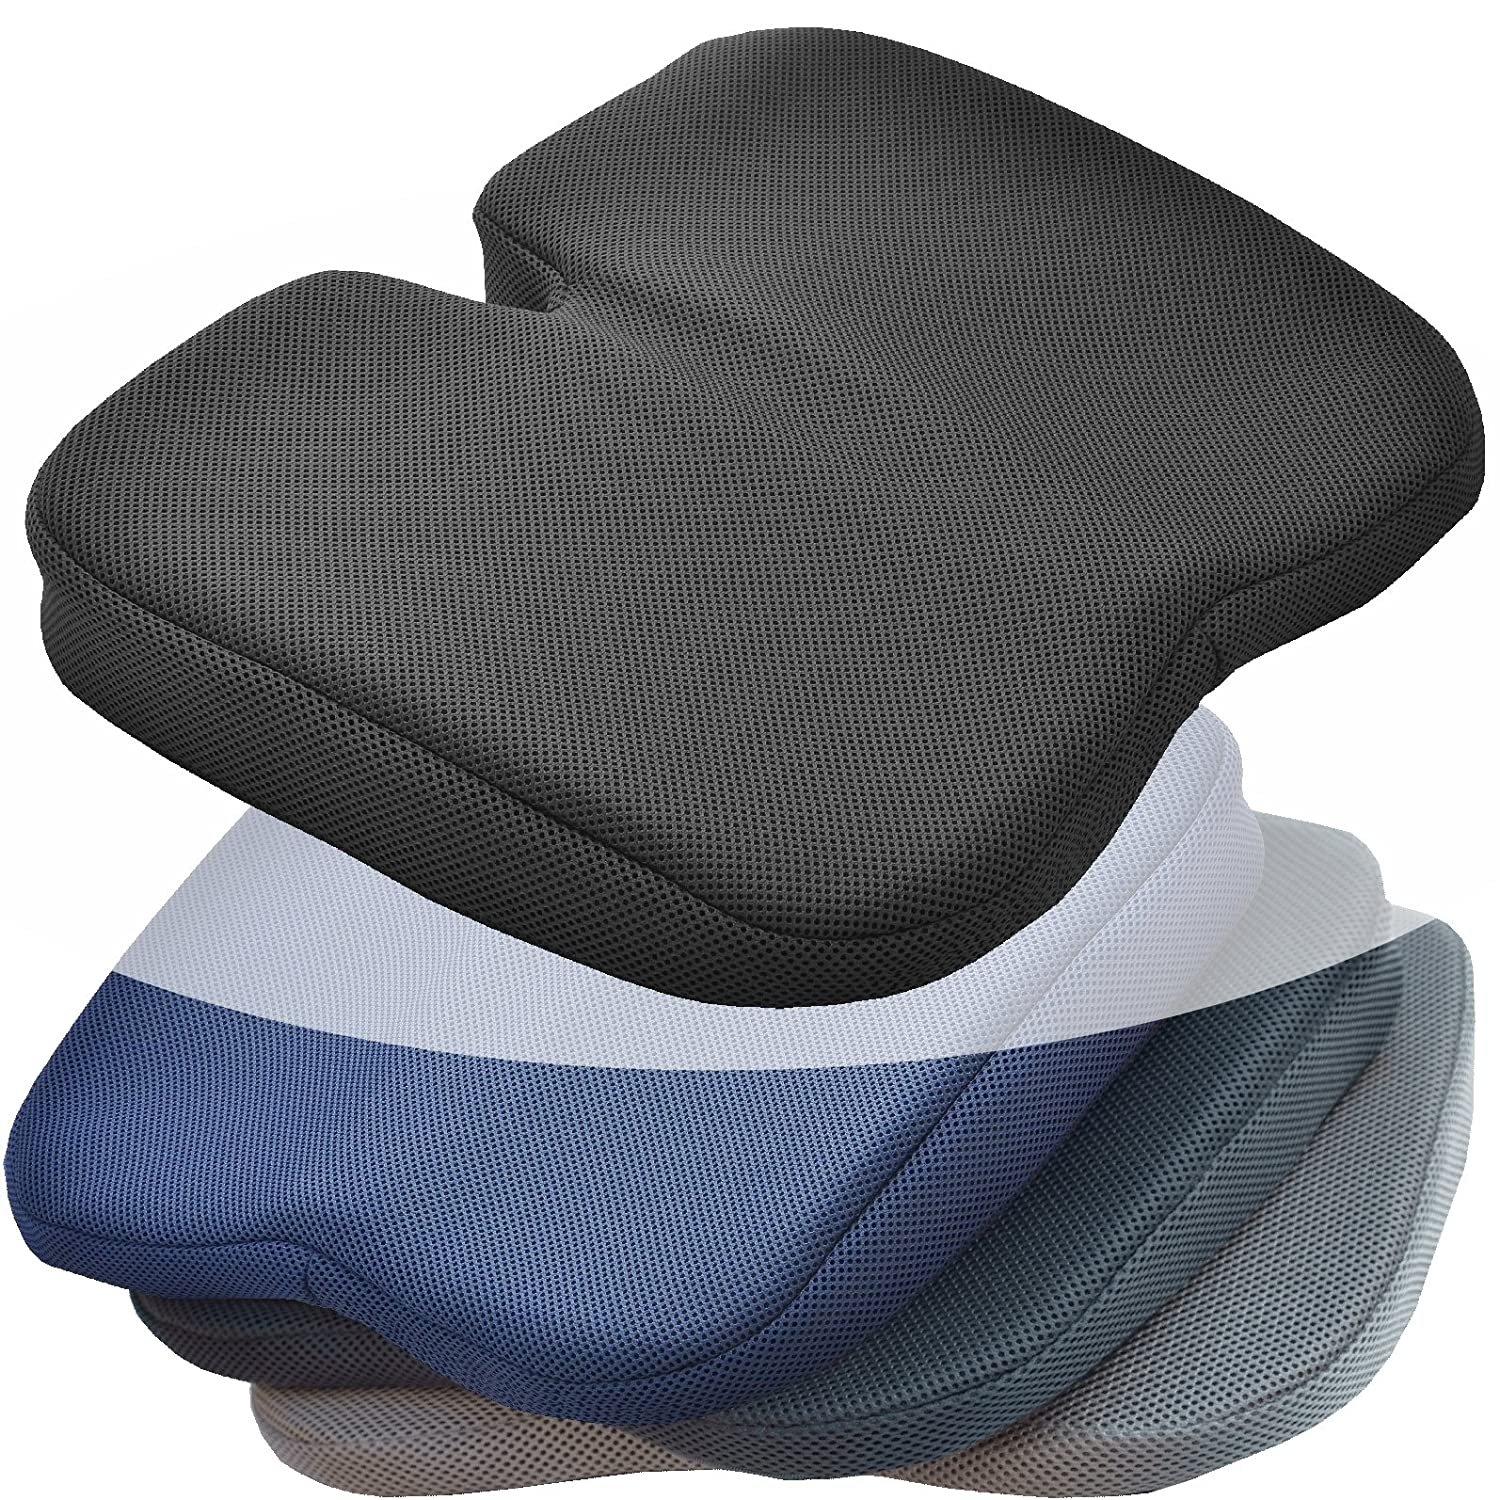 Medipaq freedom wedge cushion great for coccyx relief lumbar support back pain